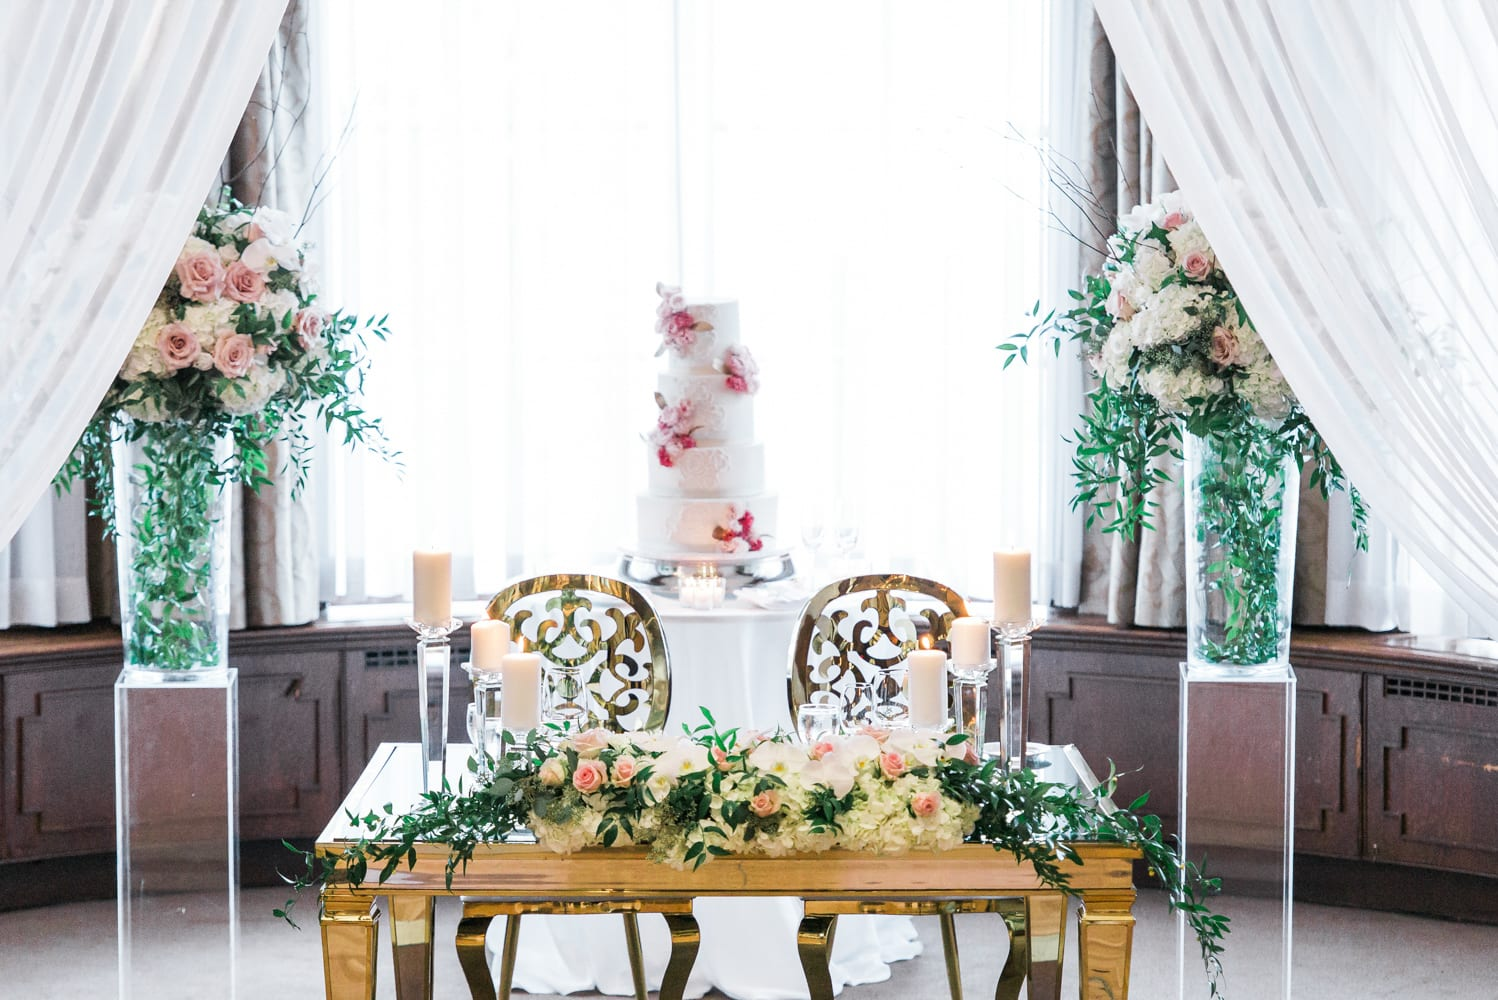 A Vintage Persian Wedding in Vancouver - Seats beside the cake